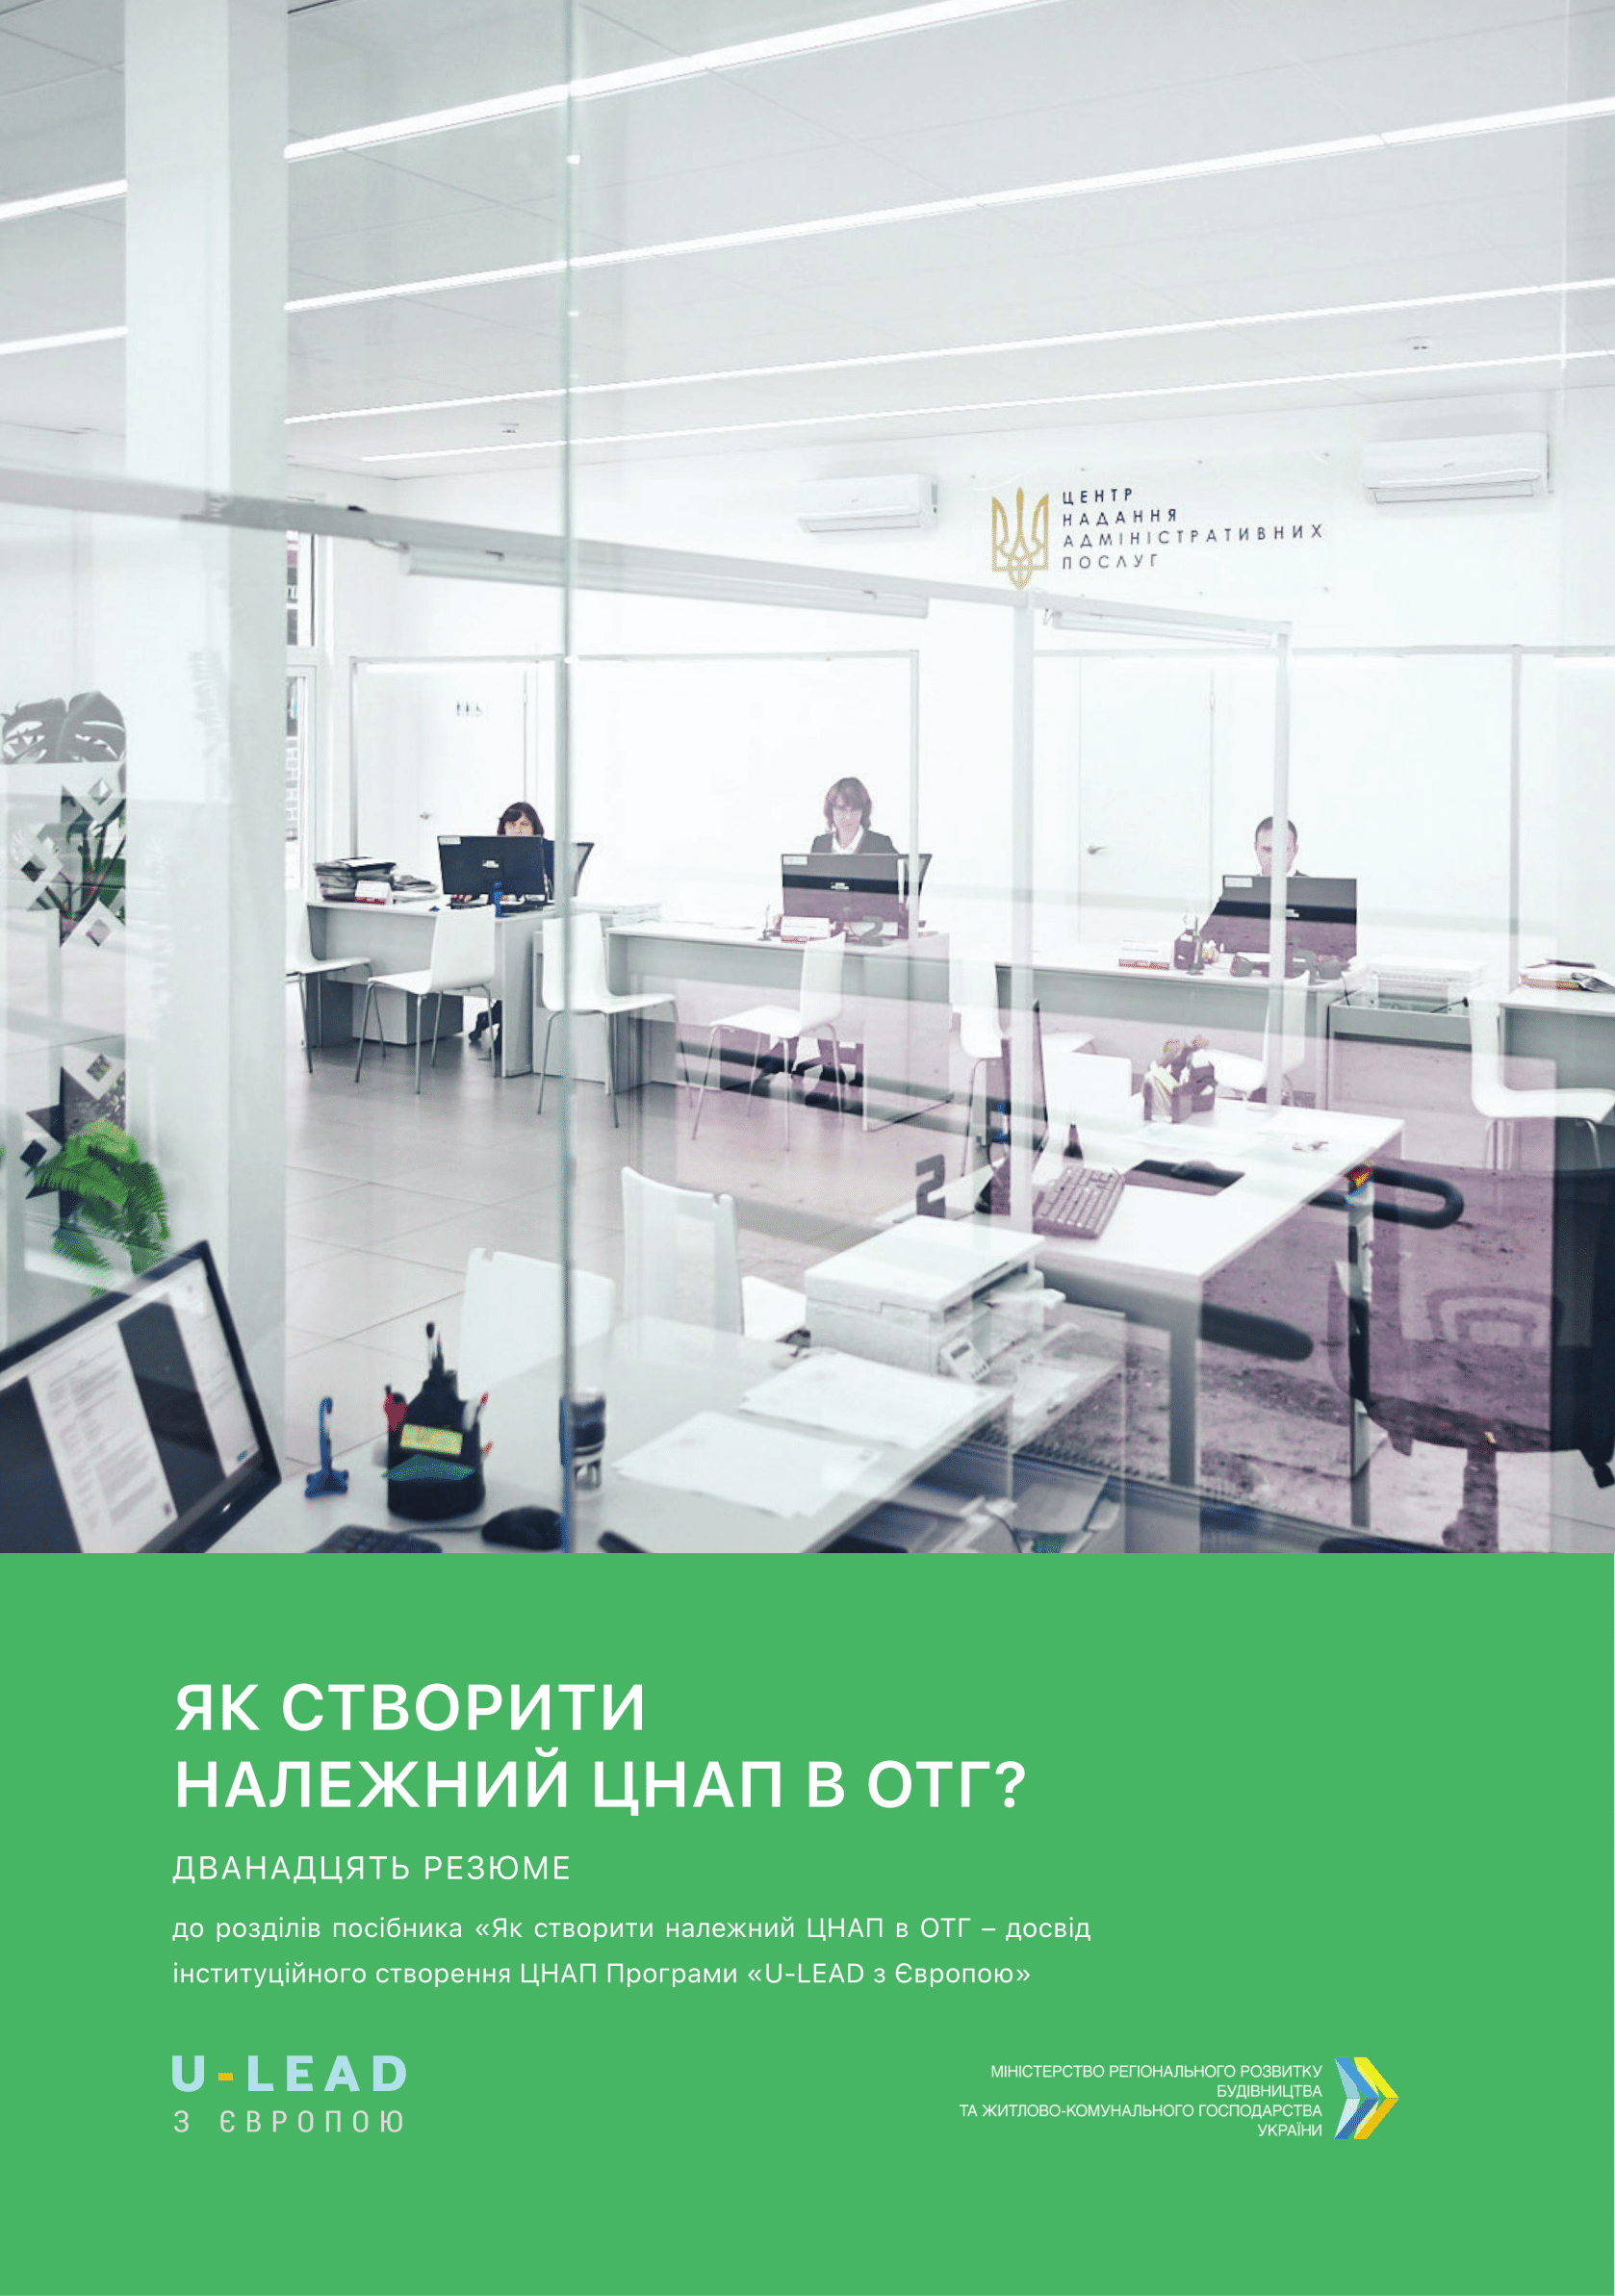 Key ideas of the manual on the institutional establishment of the ASC in hromada